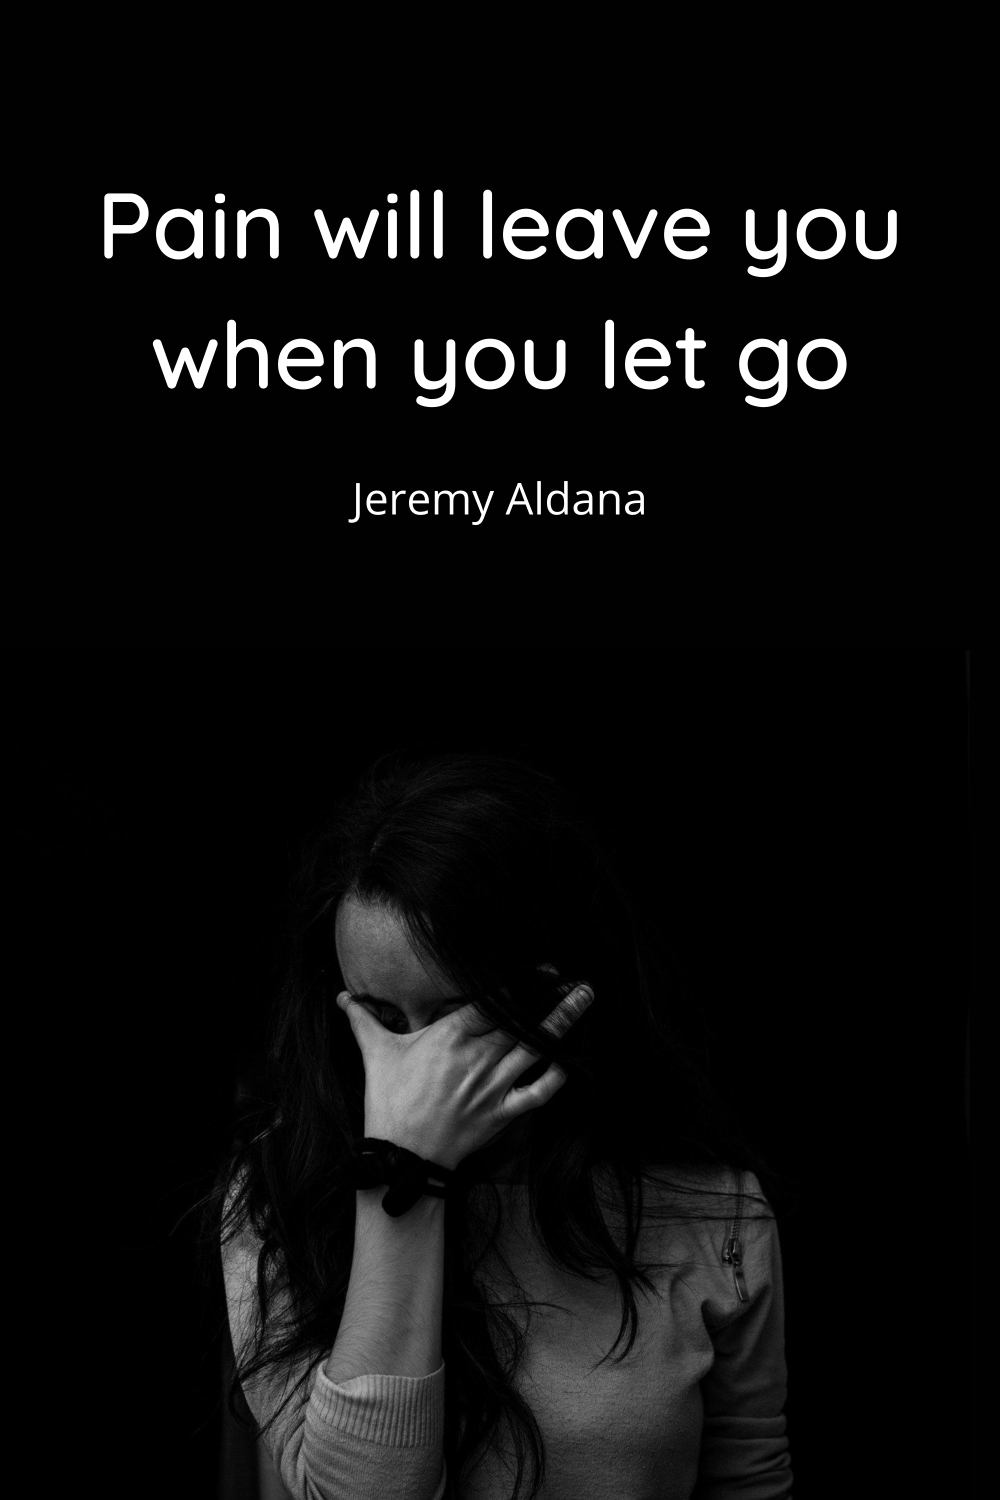 pain will leave when you let go quote